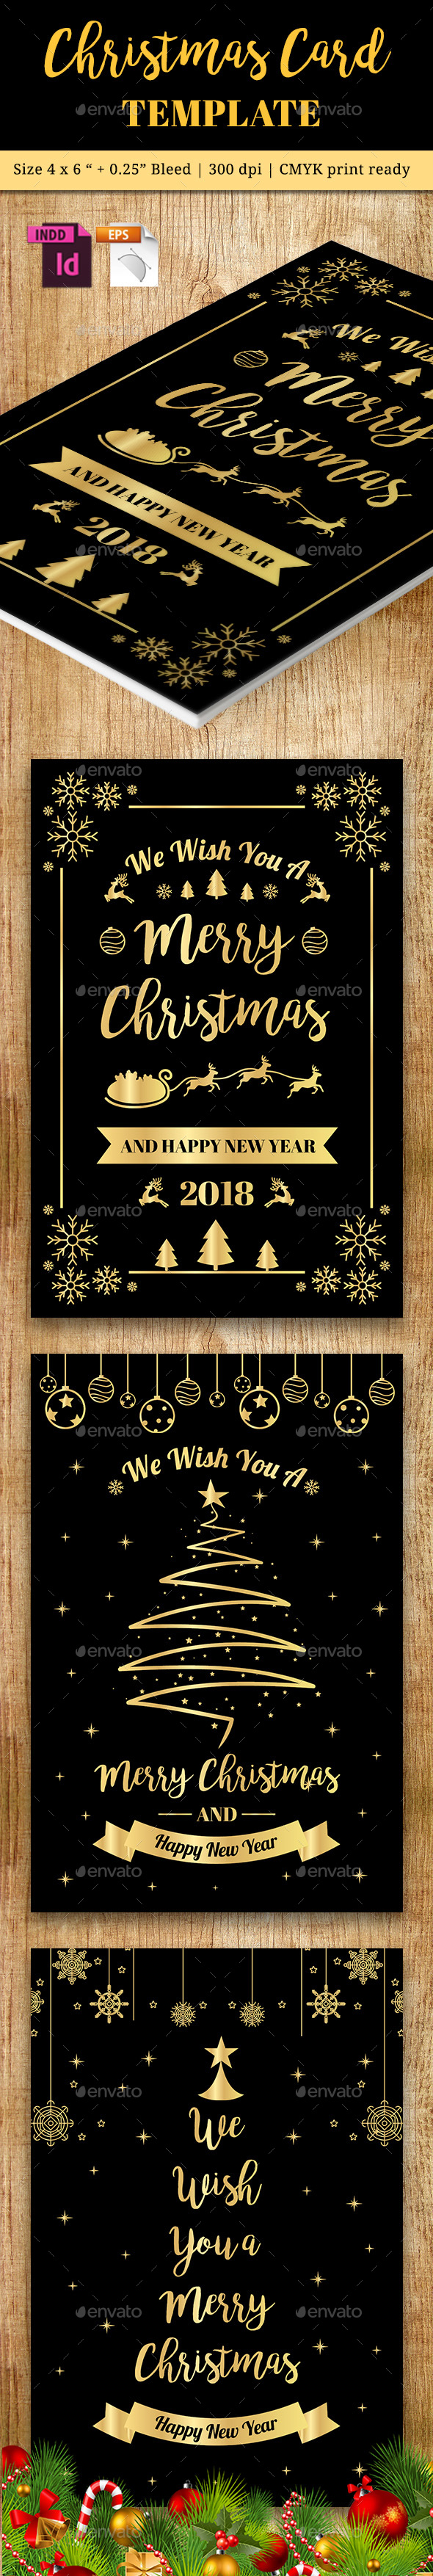 Christmas Card Vol. 5 - Cards & Invites Print Templates